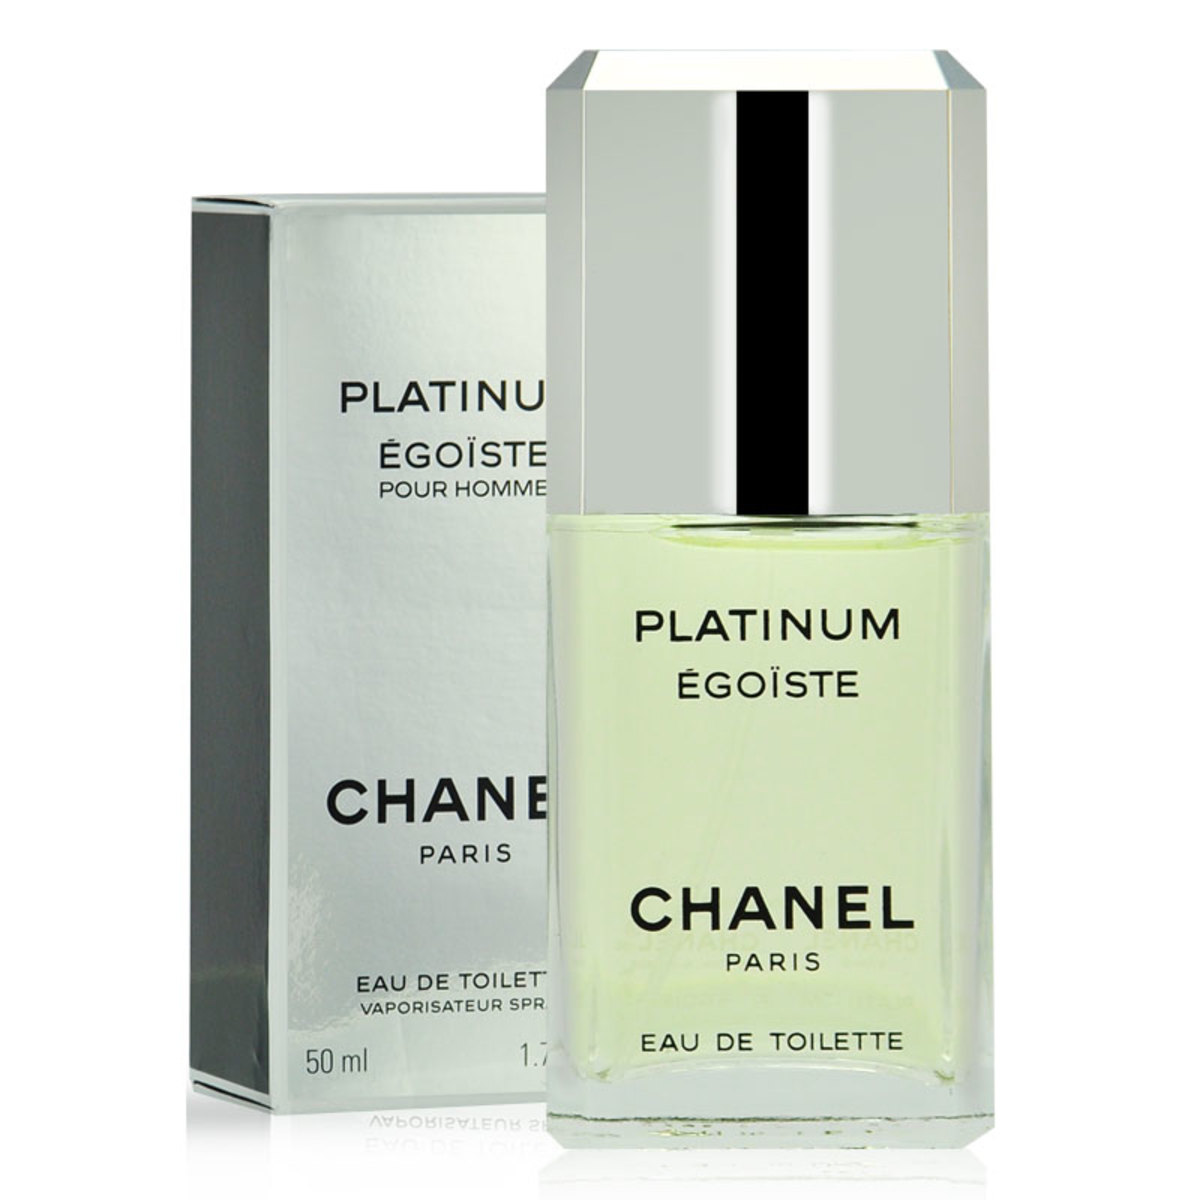 Platinum Egoiste Pour Homme EDT Spray 50ml - [Parallel Import Product]